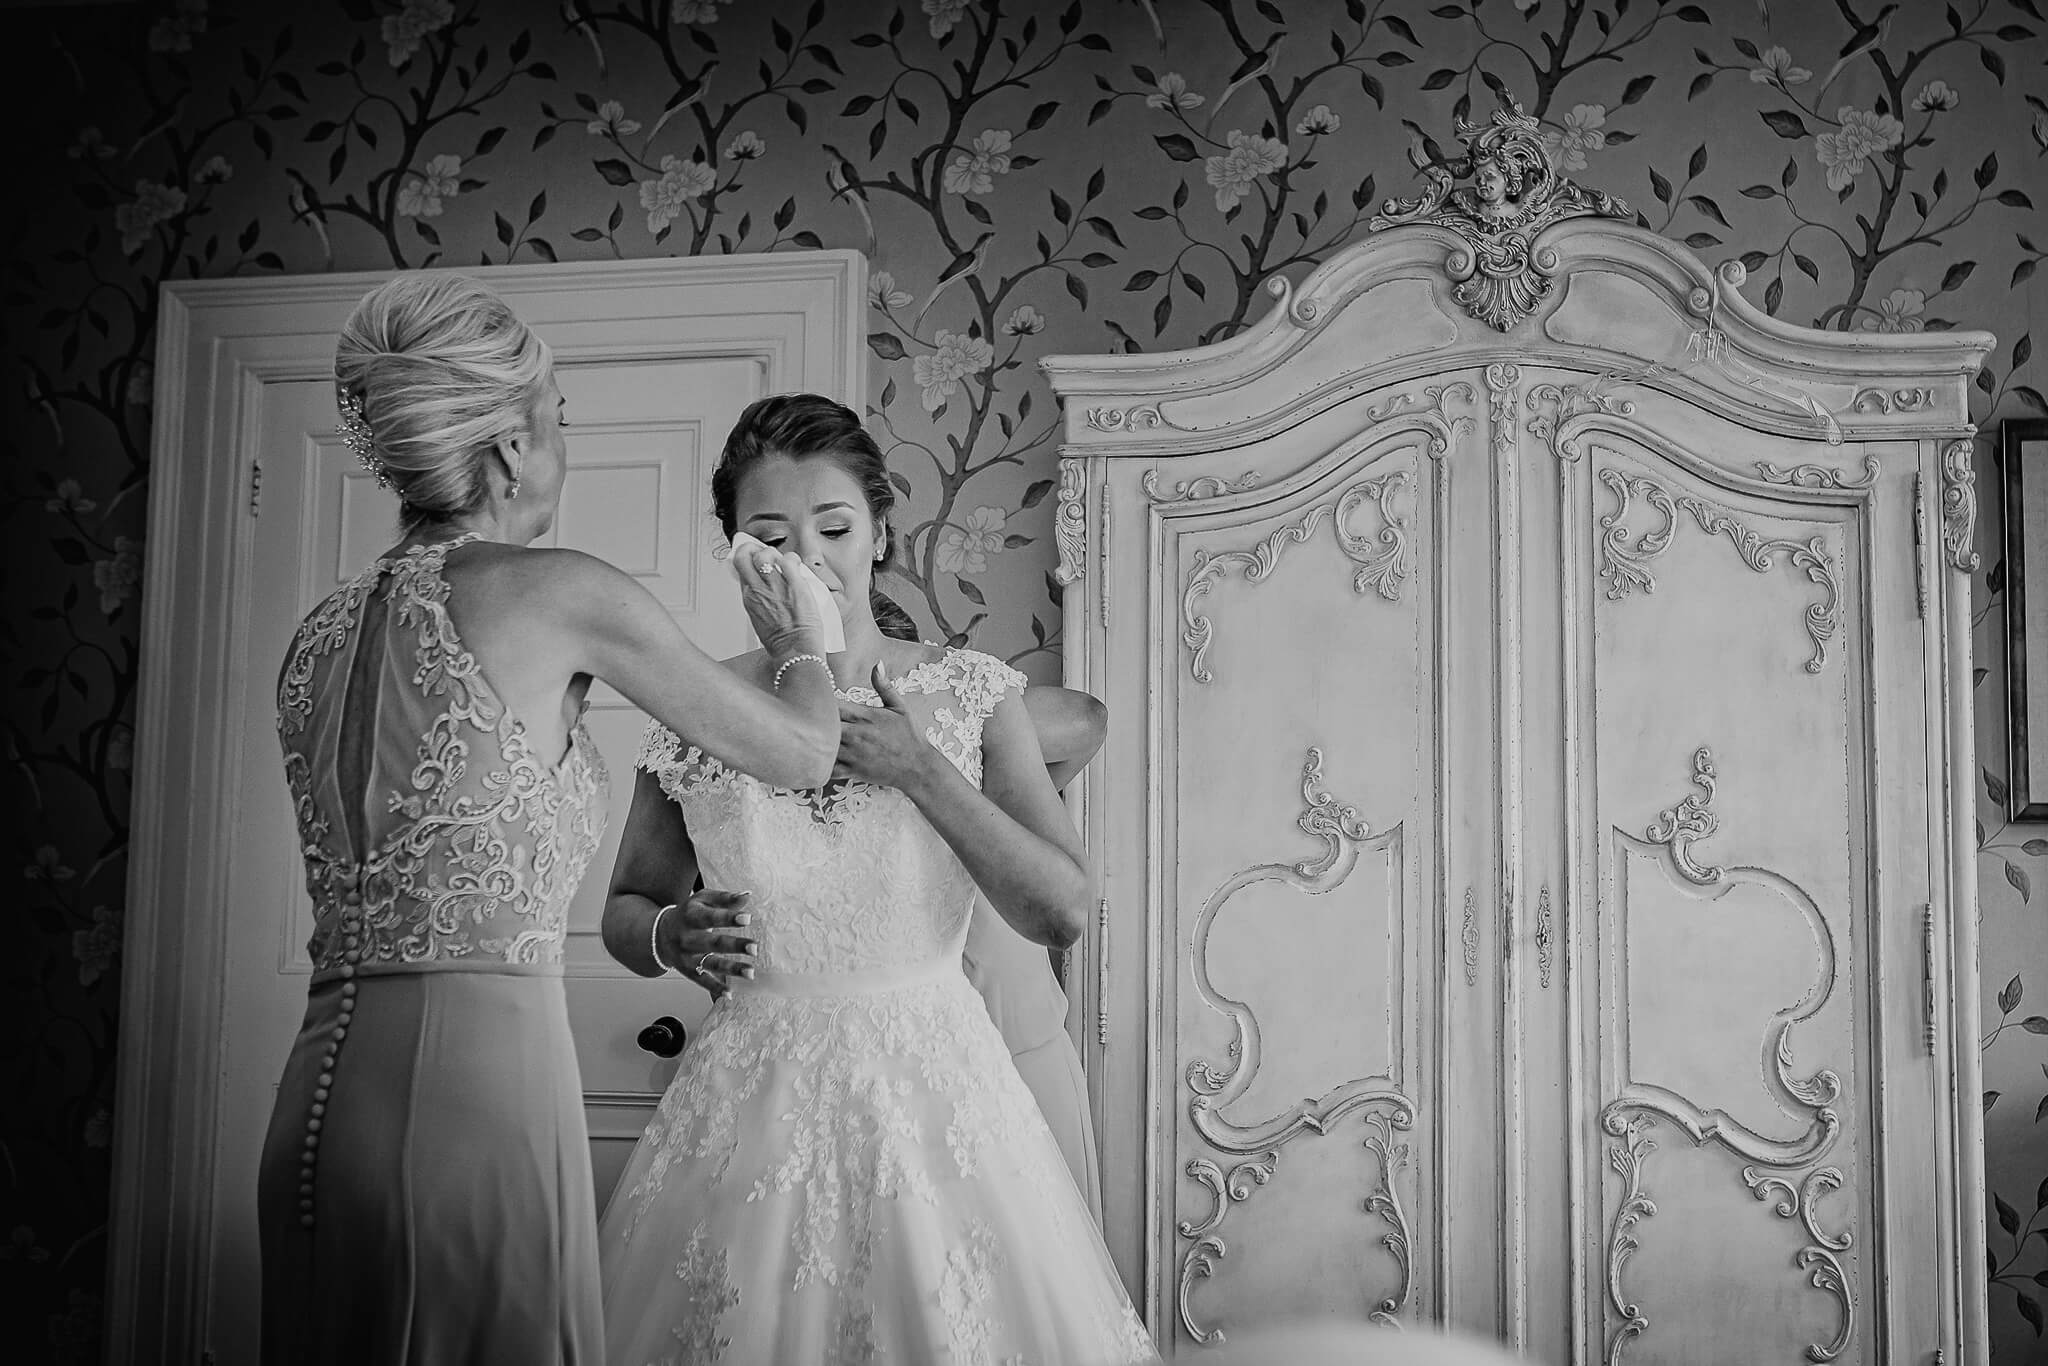 best-wedding-photographers-uk-europe-stanbury-photography-014